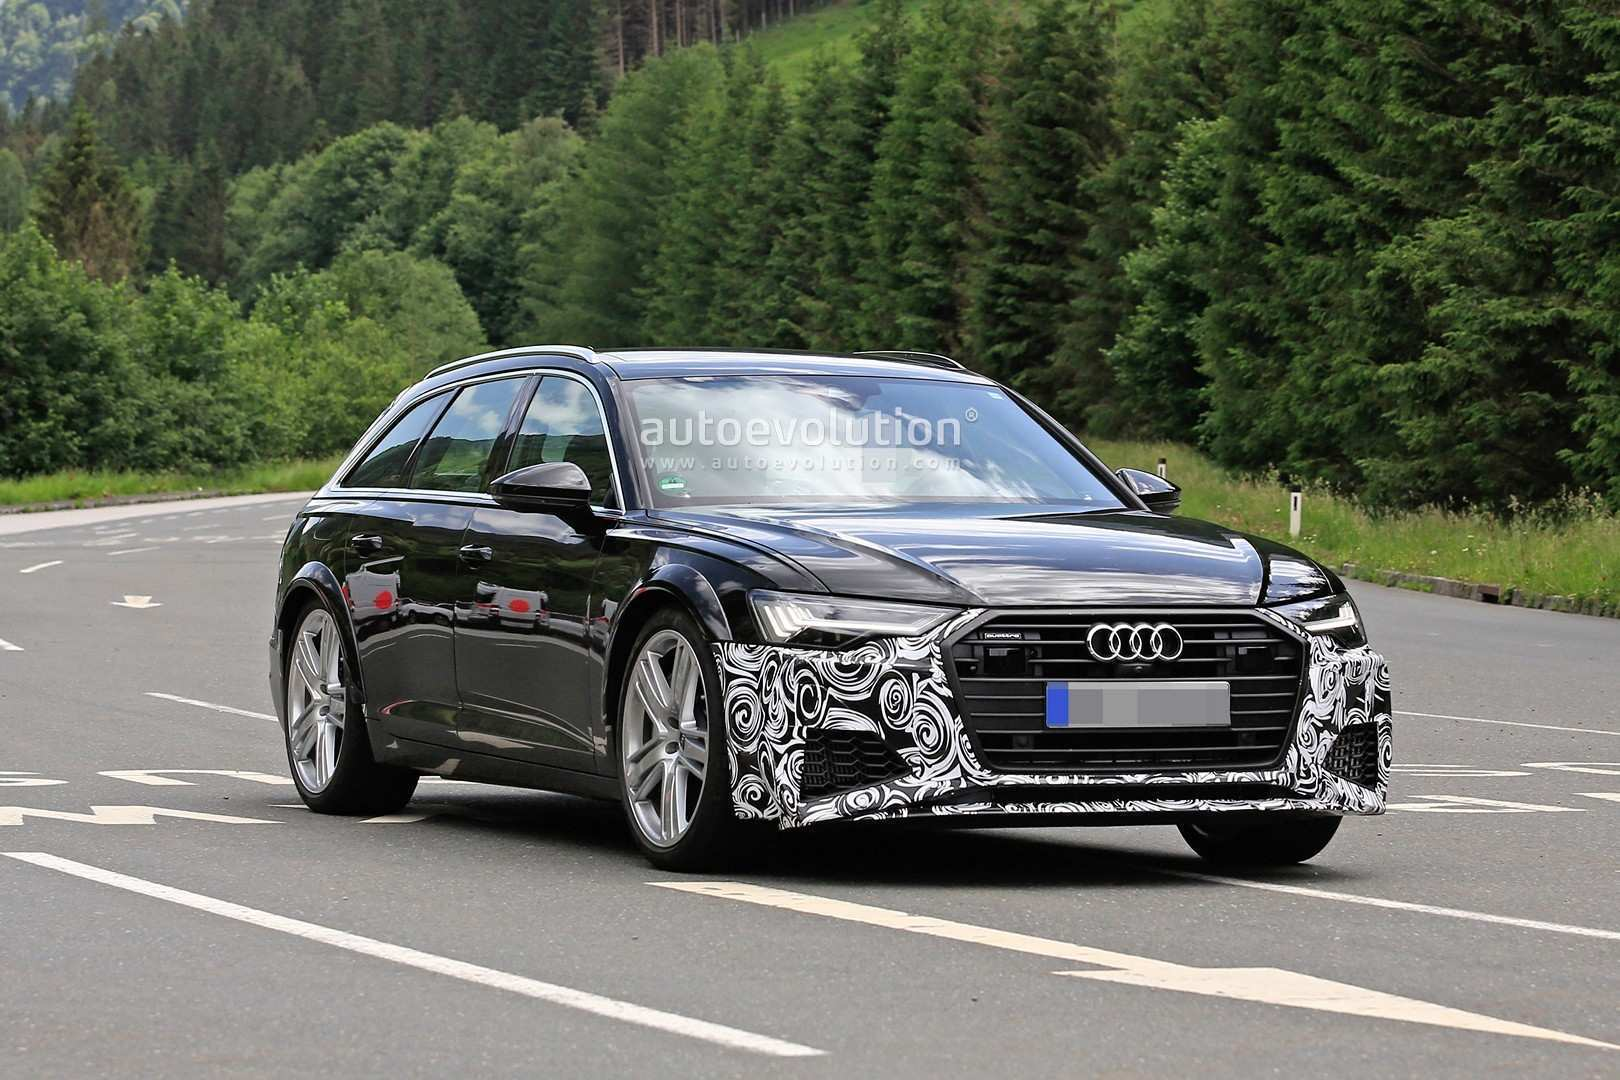 33 Best Review 2020 Audi S7 Speed Test for 2020 Audi S7